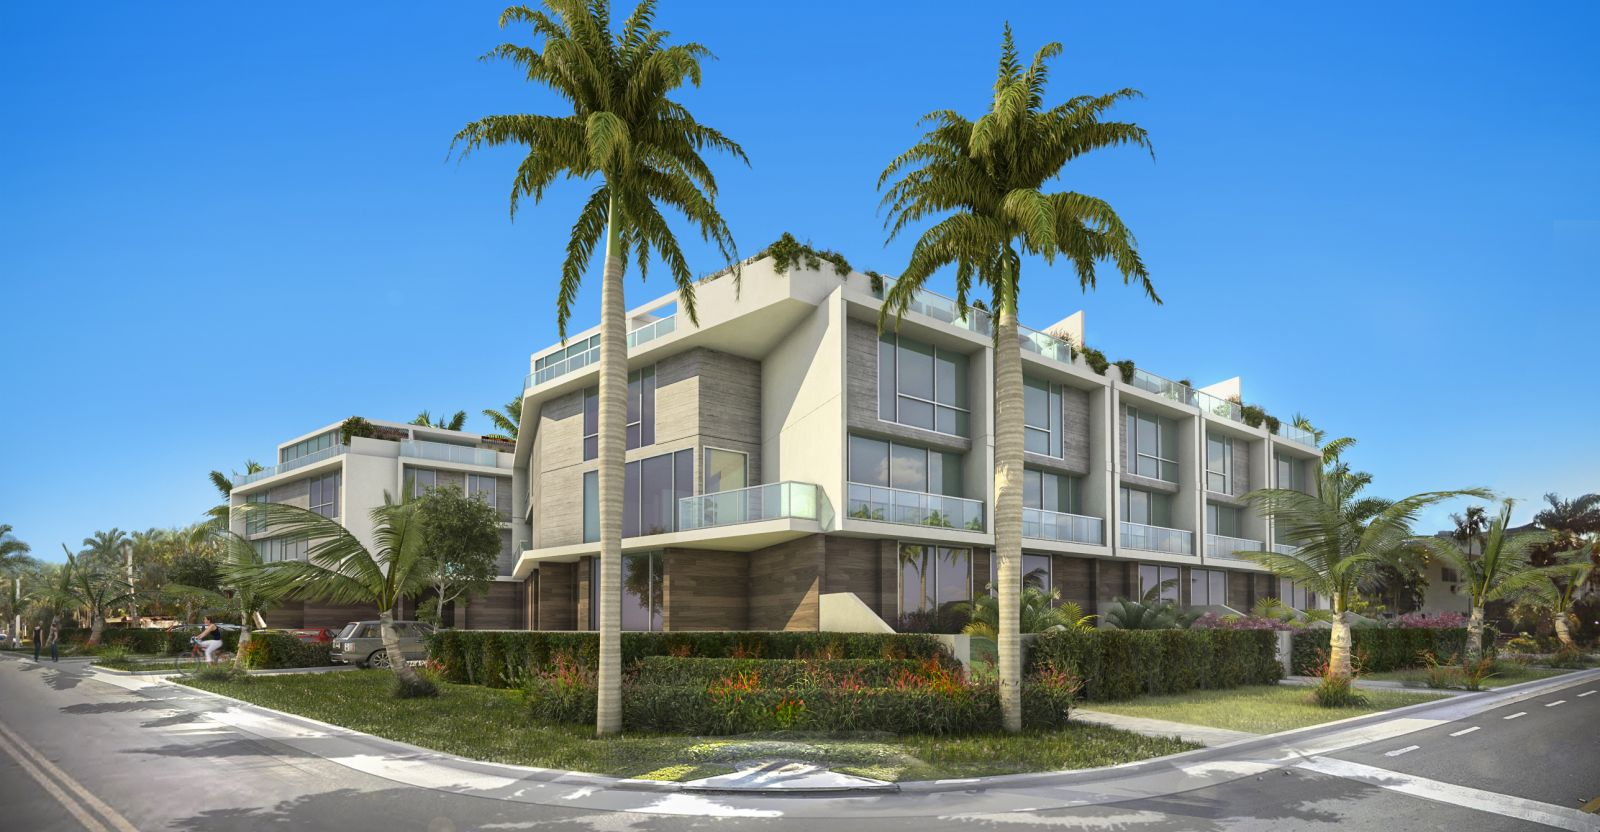 Villas for Sale in Florida, United States of America